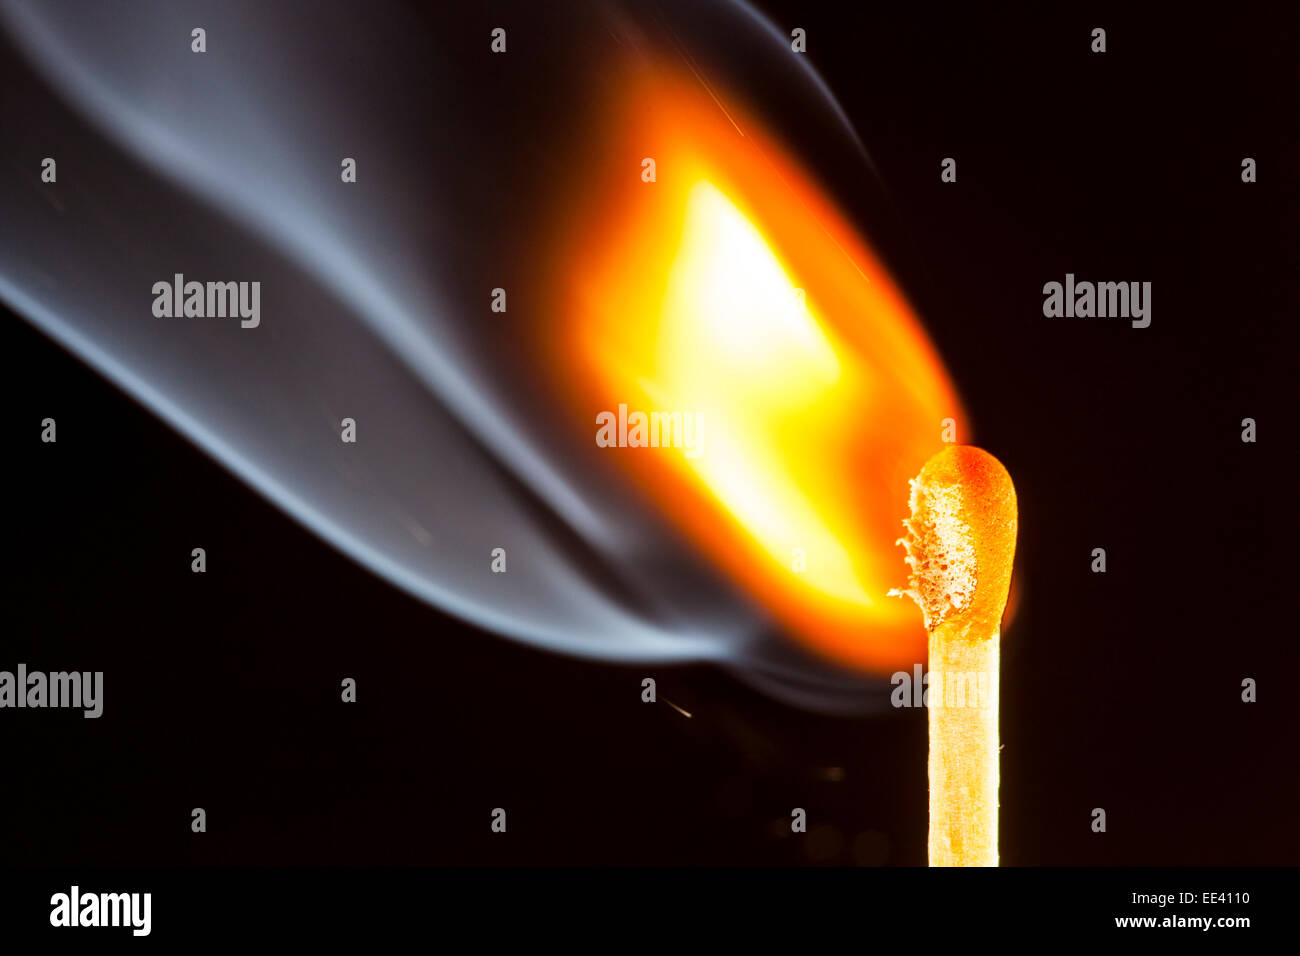 Match just ignited, flame at the match head, - Stock Image